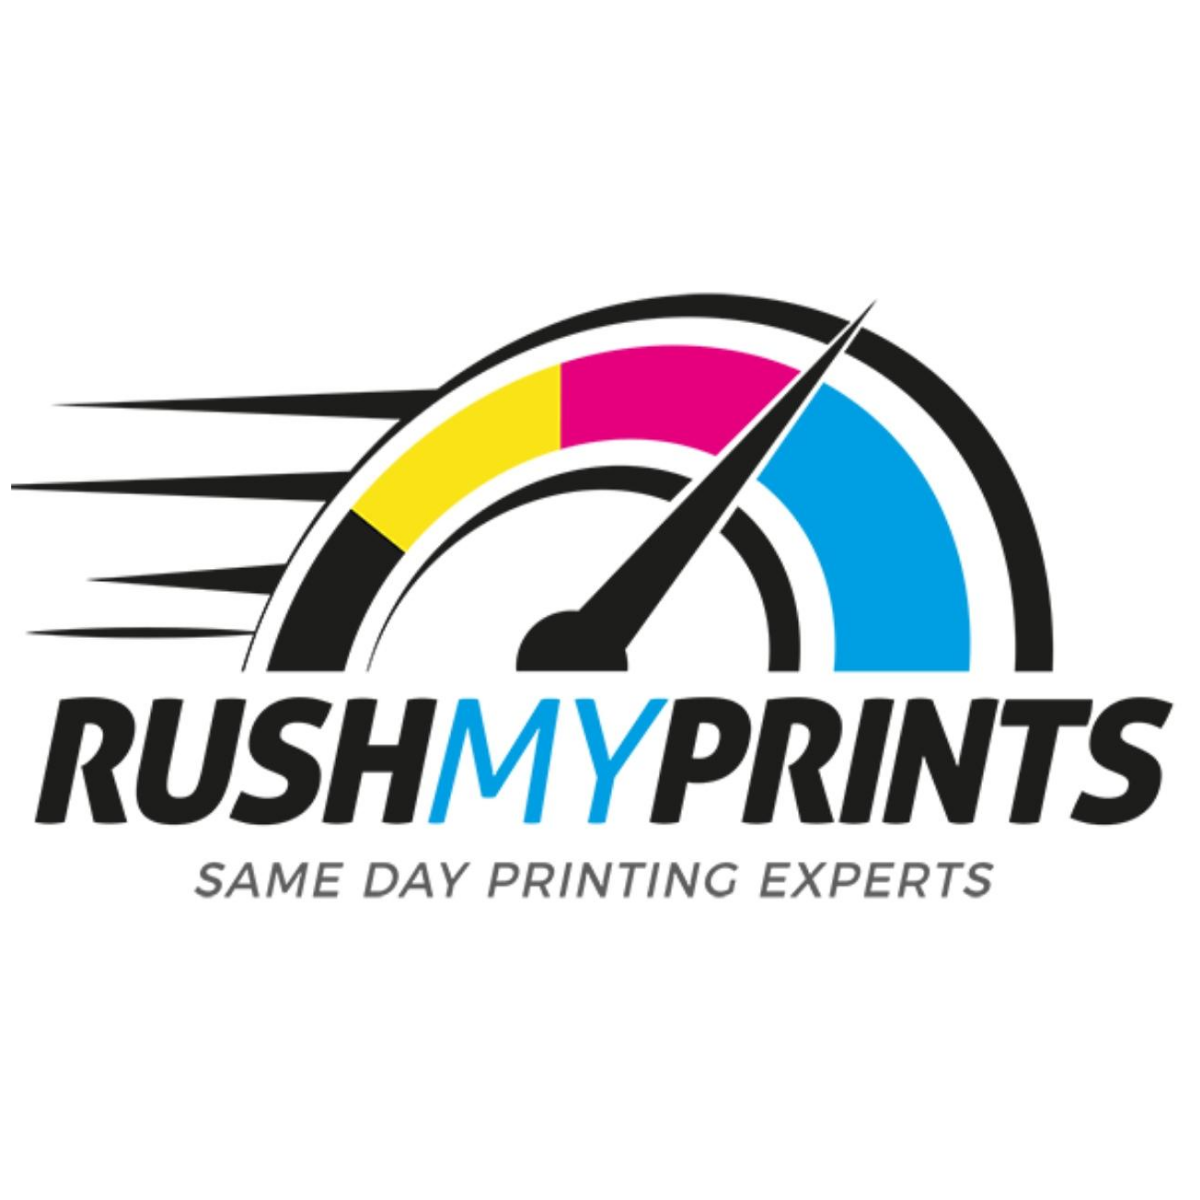 Same Day Printing Services by RushMyPrints With Free Delivery for Booklets, Full-Color Postcards, Full-Color Brochures, and More